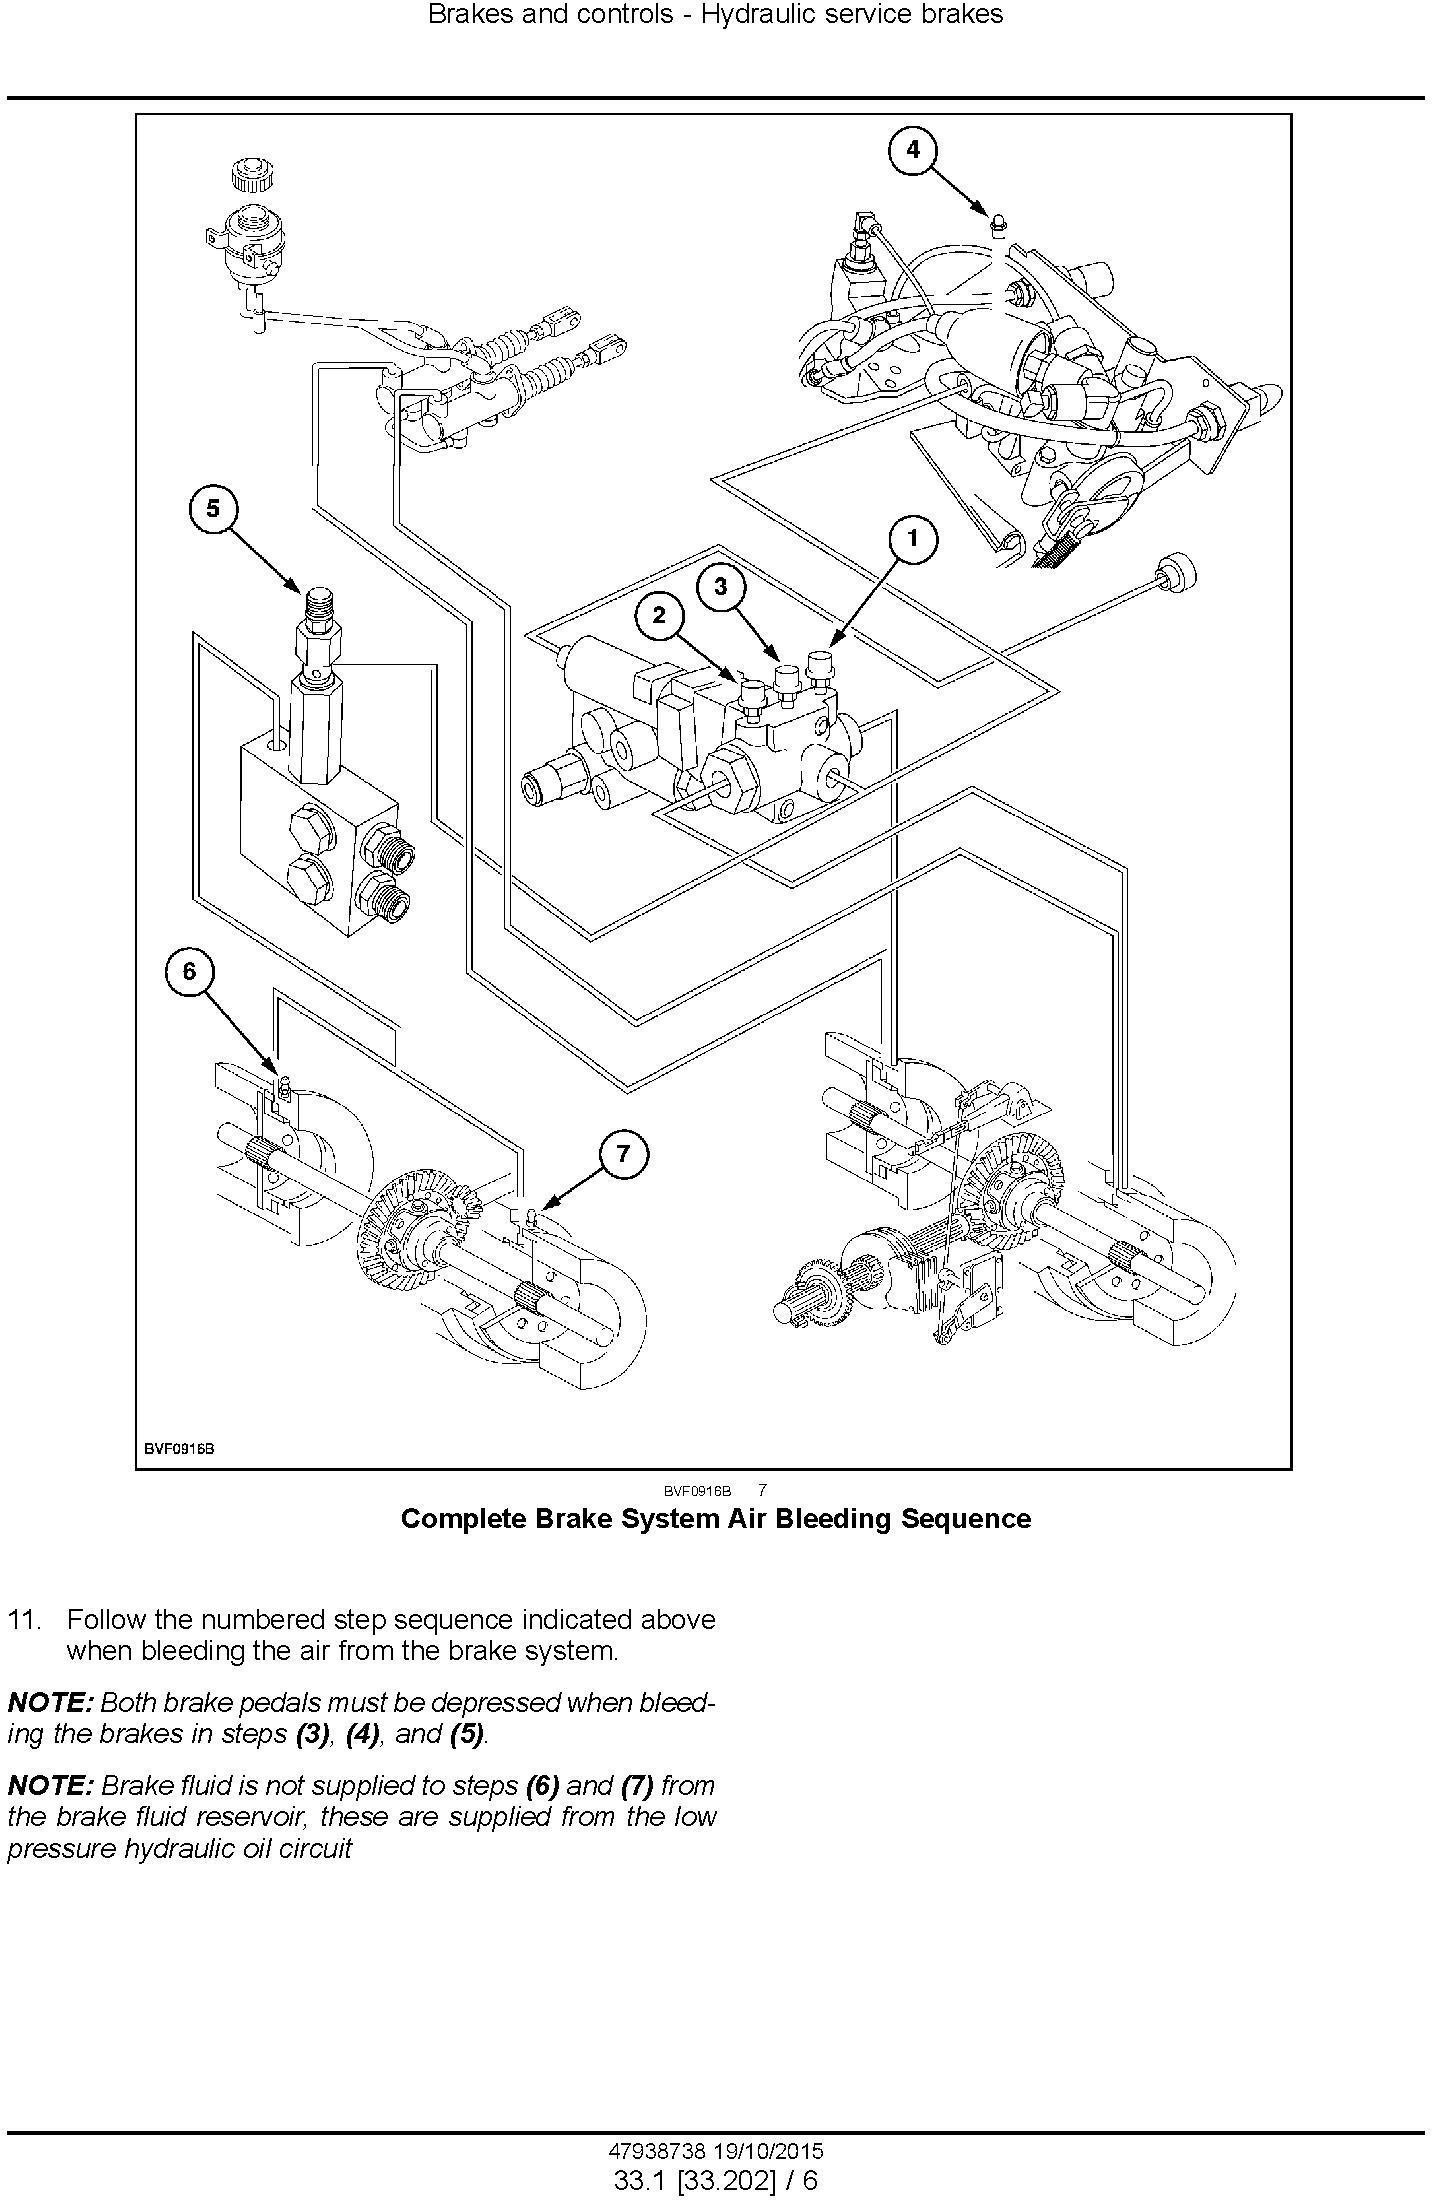 New Holland T6.125, T6.145, T6.155, T6.165, T6.175, T6.180 Auto Command Tractor Service Manual (USA) - 3